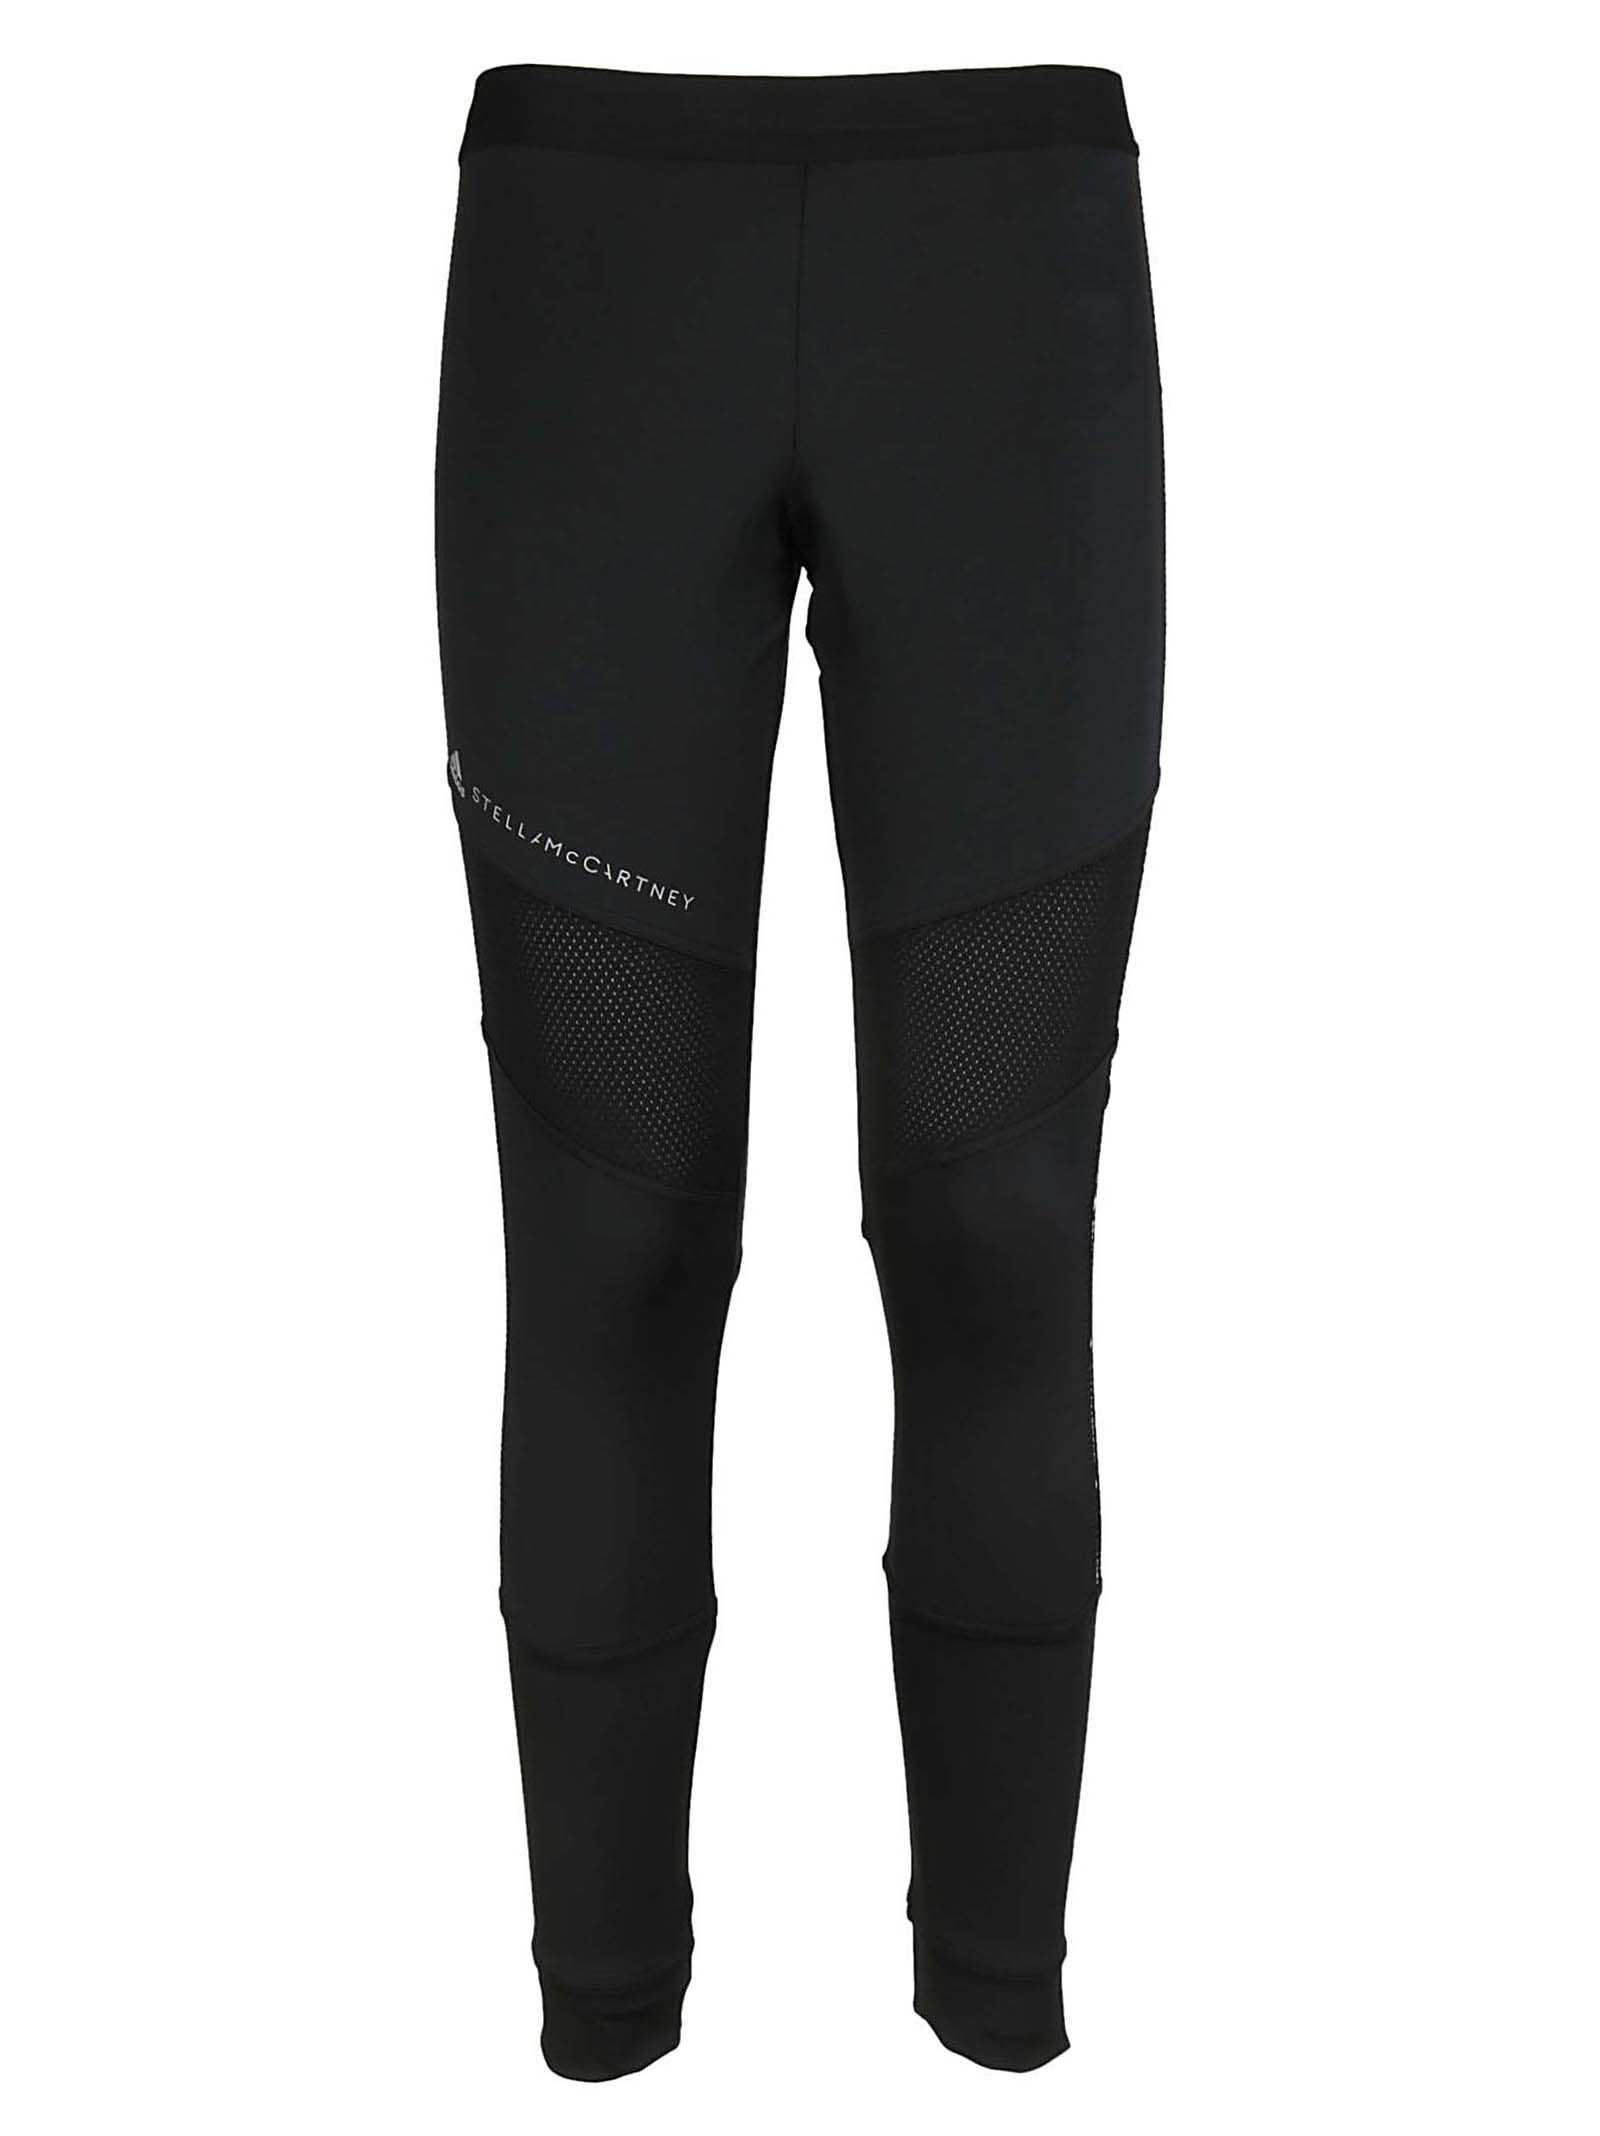 PERFORMANCE ESSENTIALS LONG TIGHTS from Italist.com